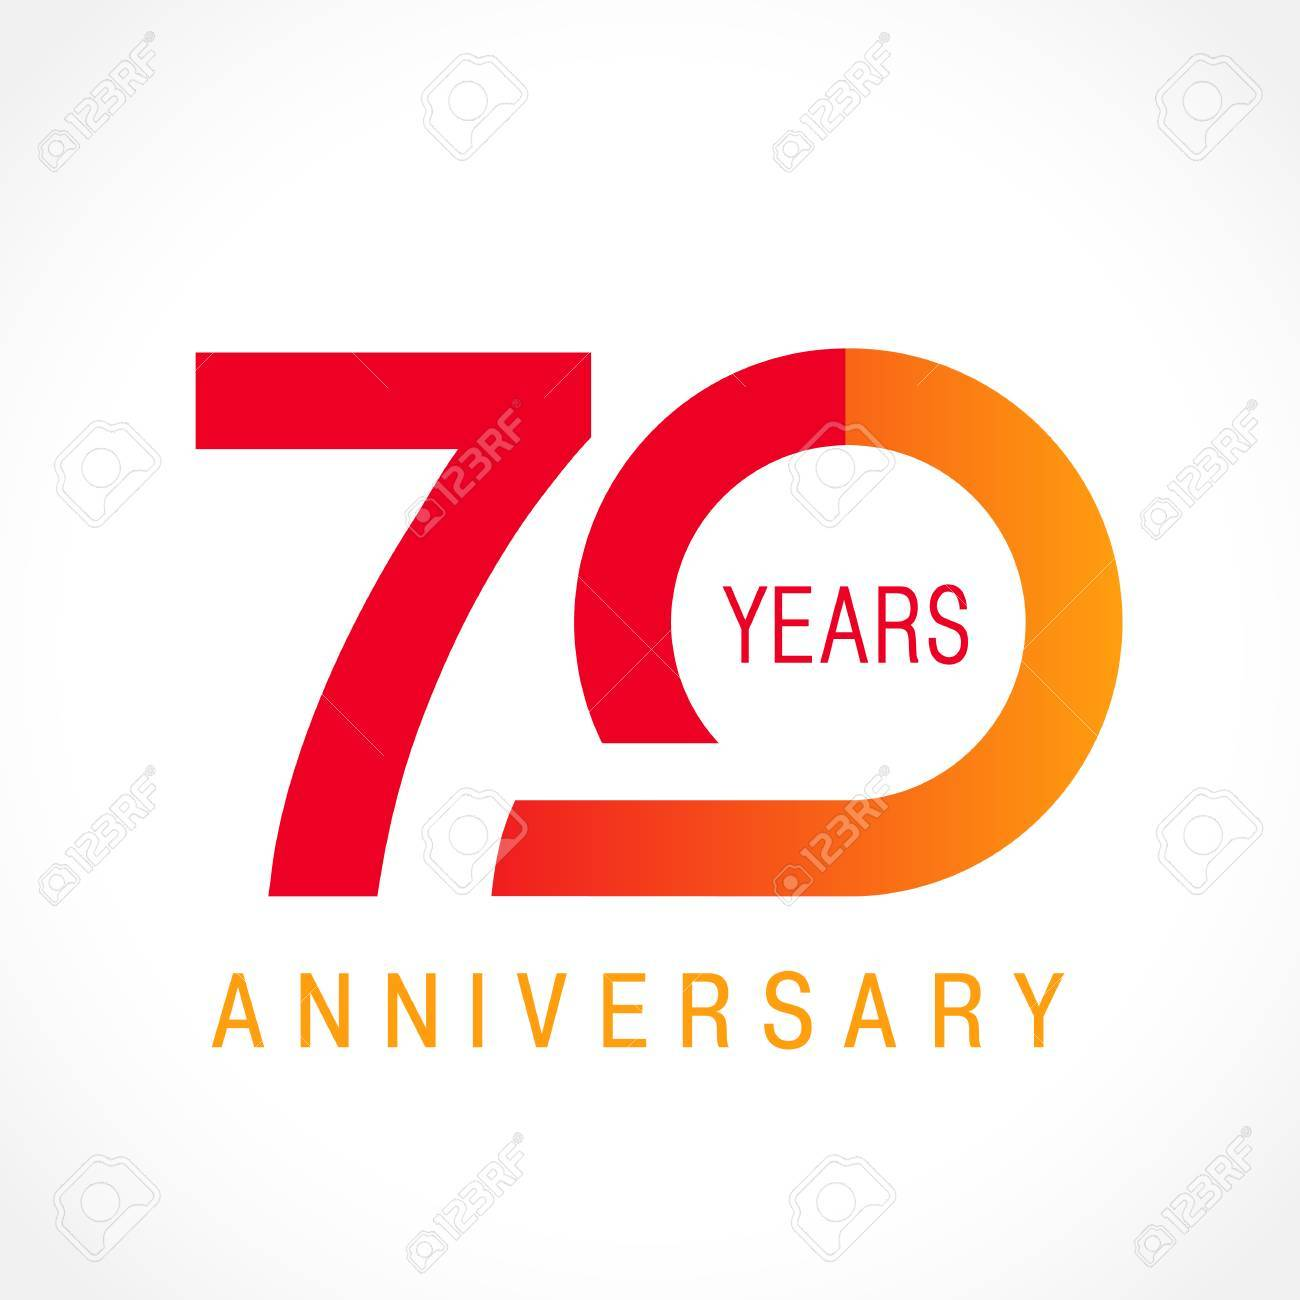 70 Years Old Celebrating Classic Logo Colored Anniversary Th Template Numbers Birthday Greetings